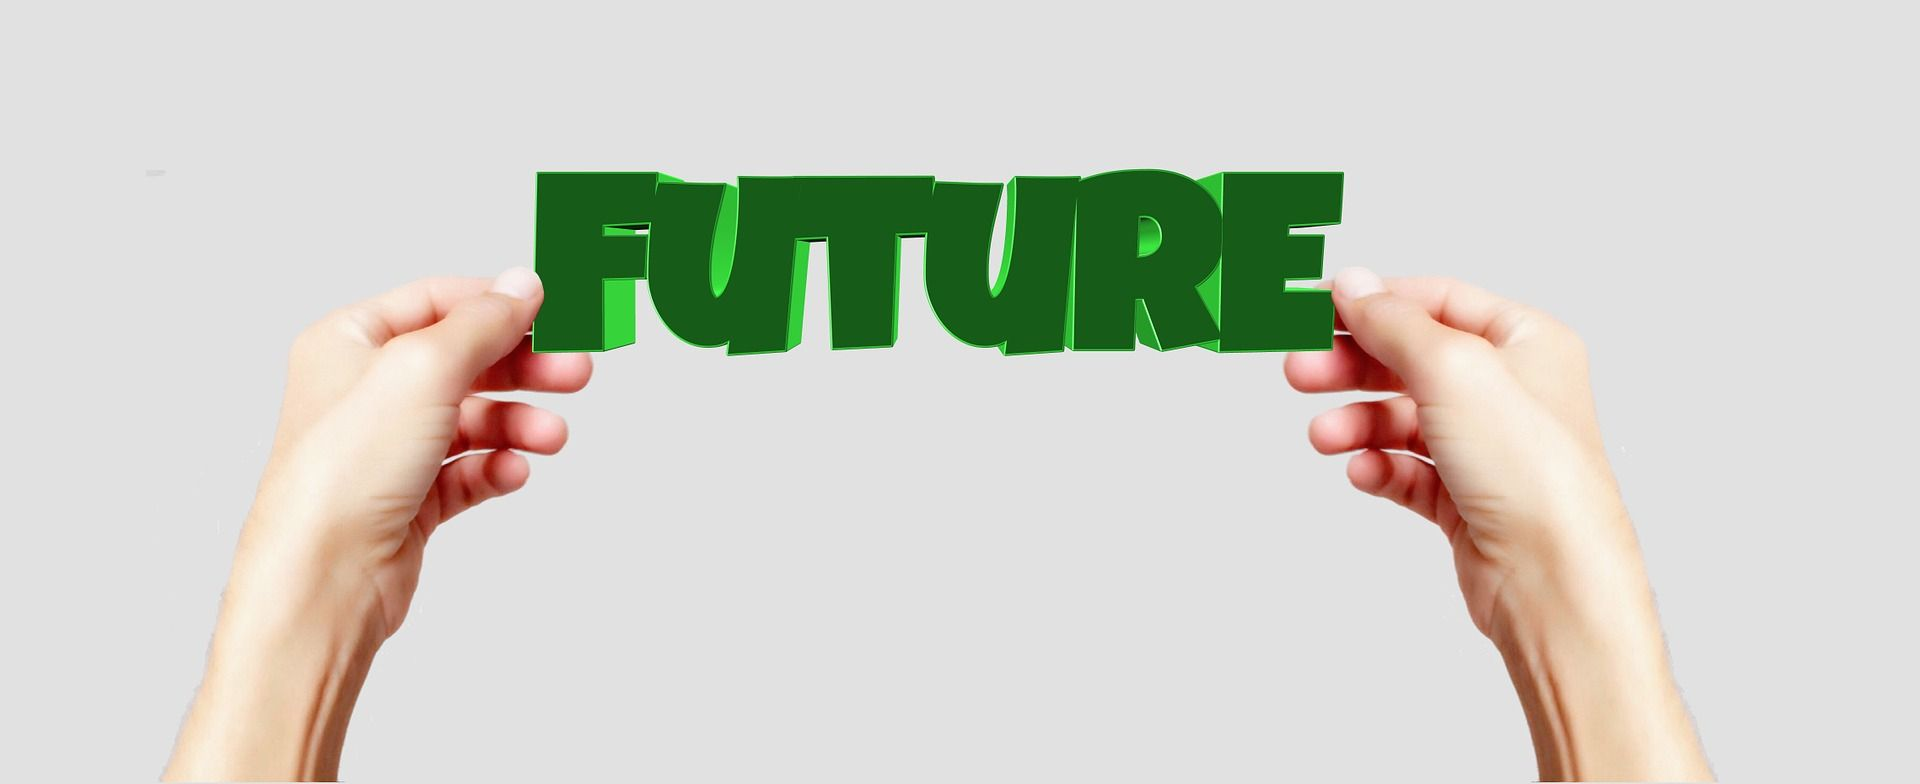 In control of your future